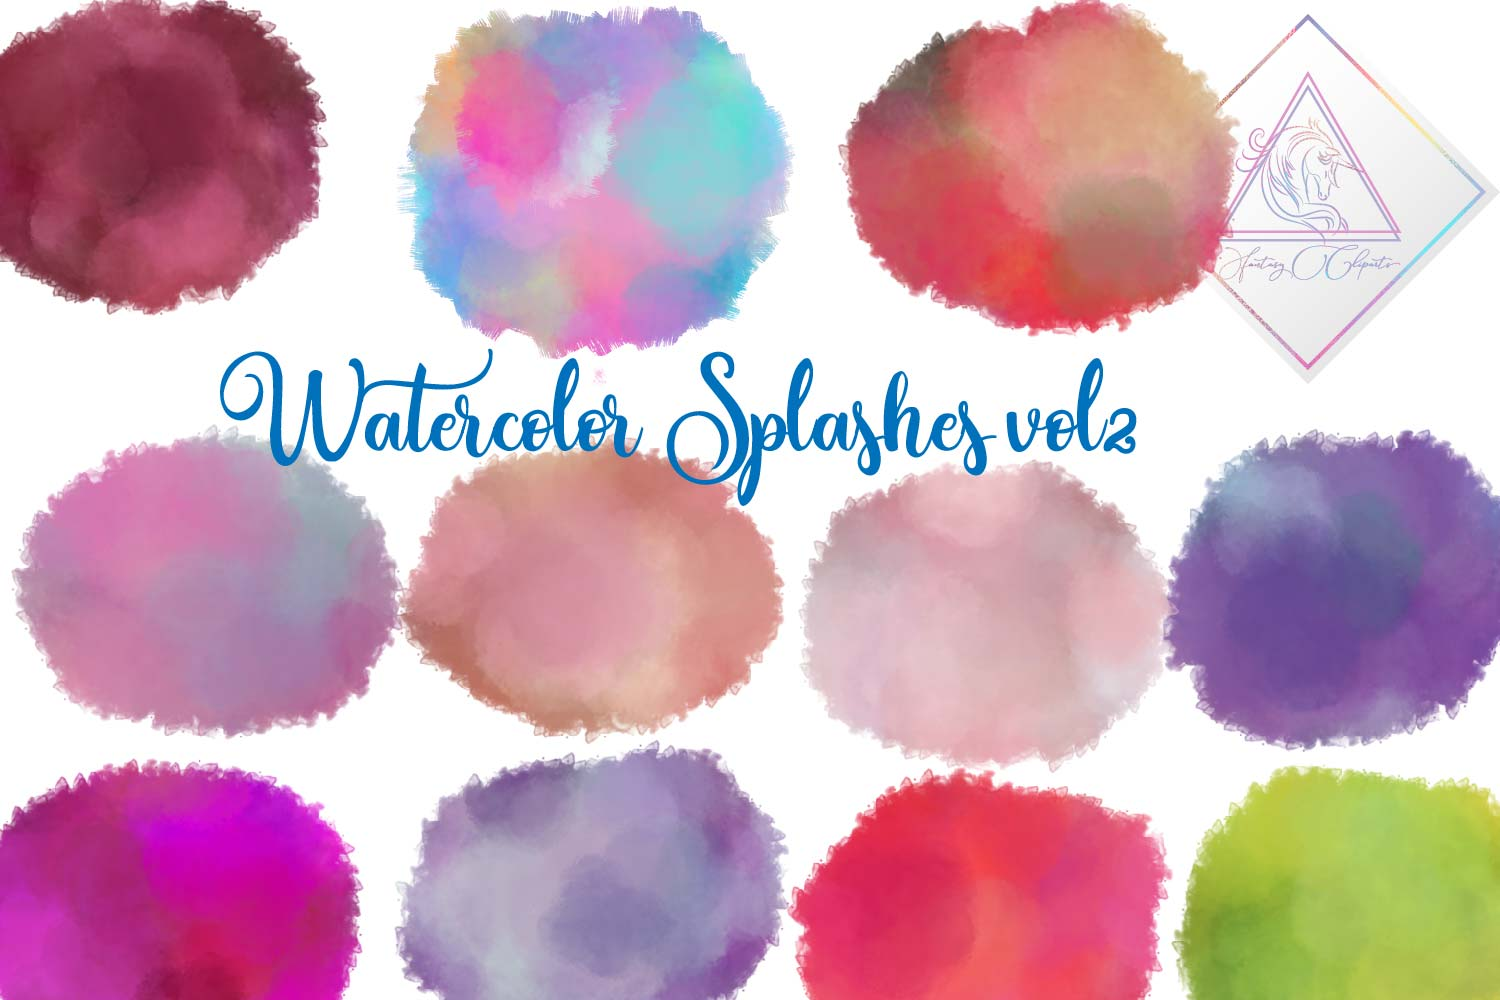 Watercolor Splashes Clipart vol 2 example image 1